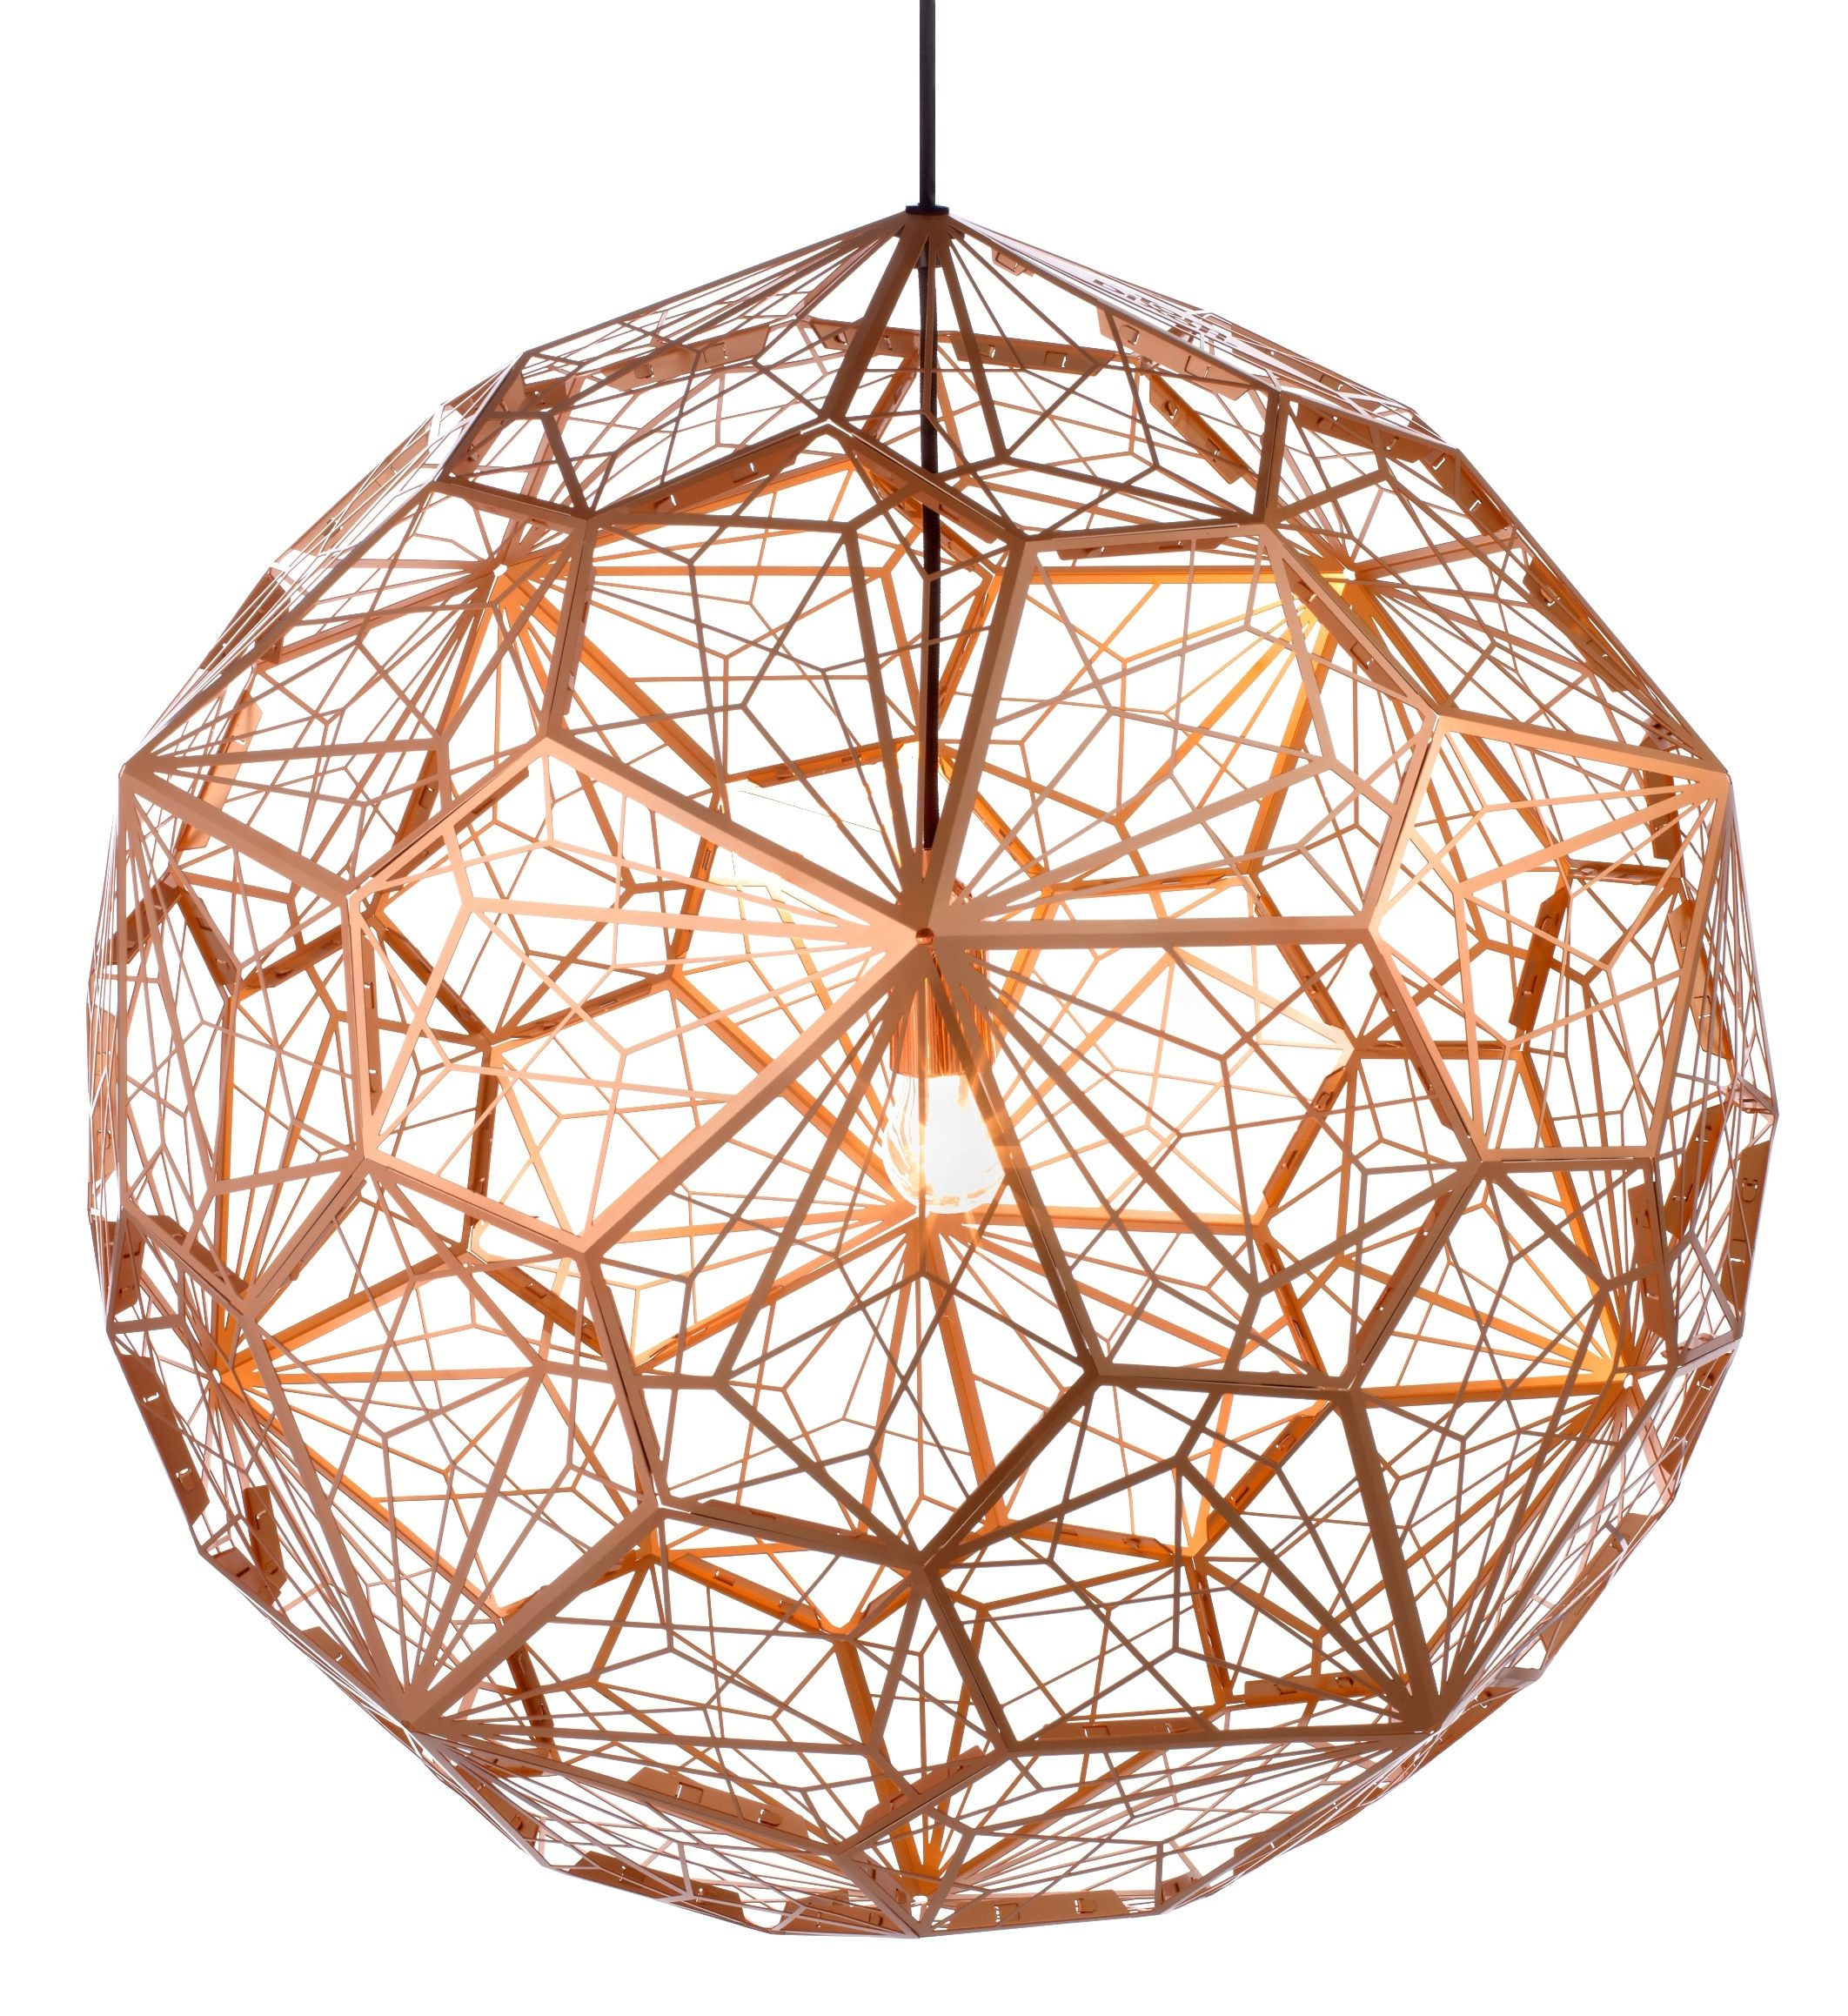 Tom Dixon Le Chantre Du Metal Tom Dixon Lighting Copper Pendant Lights Tom Dixon Etch